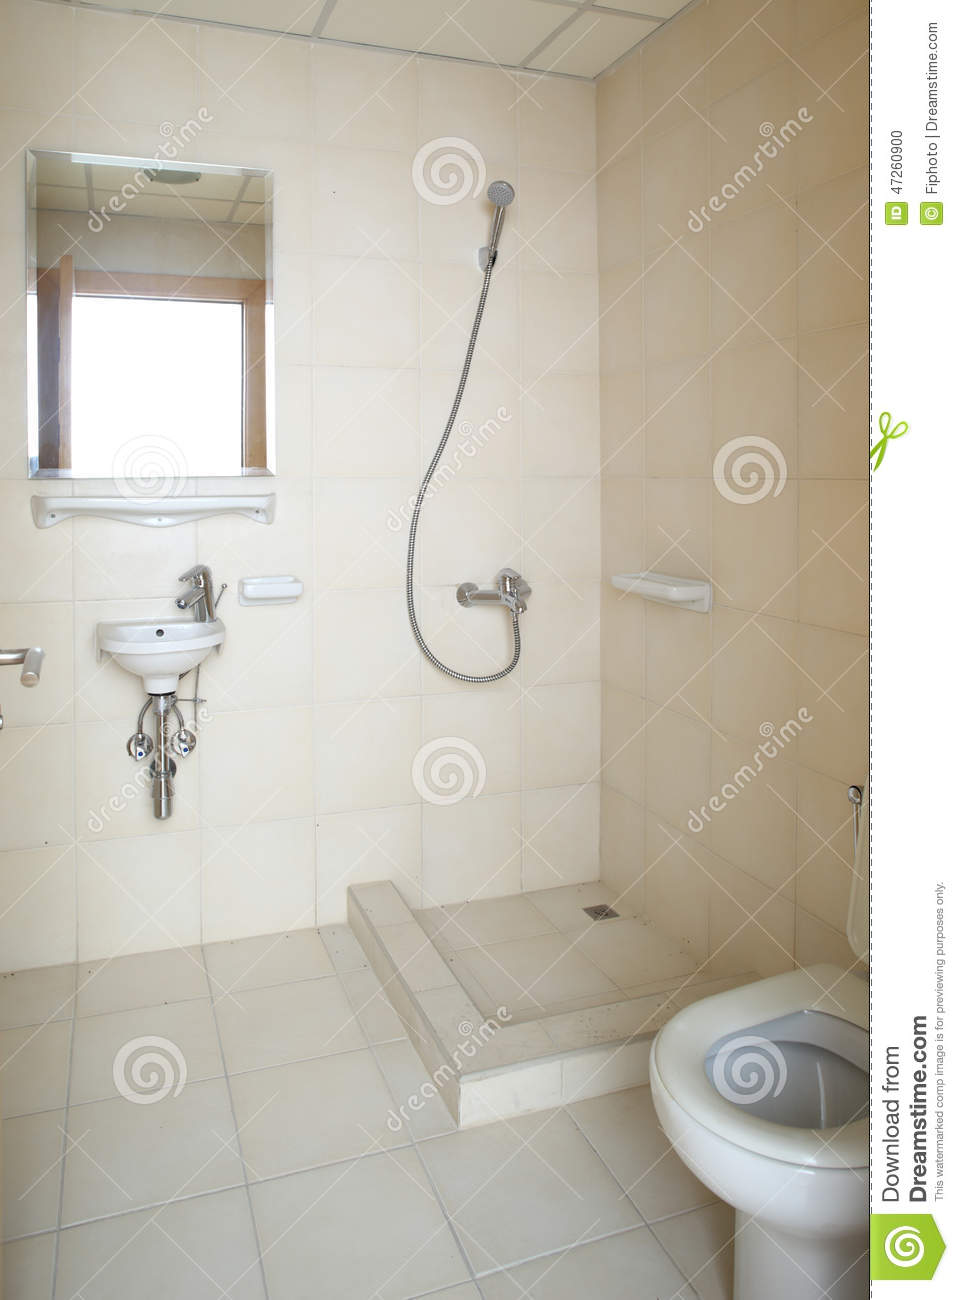 Interior Of Modern European Shower Stock Photo - Image of room ...